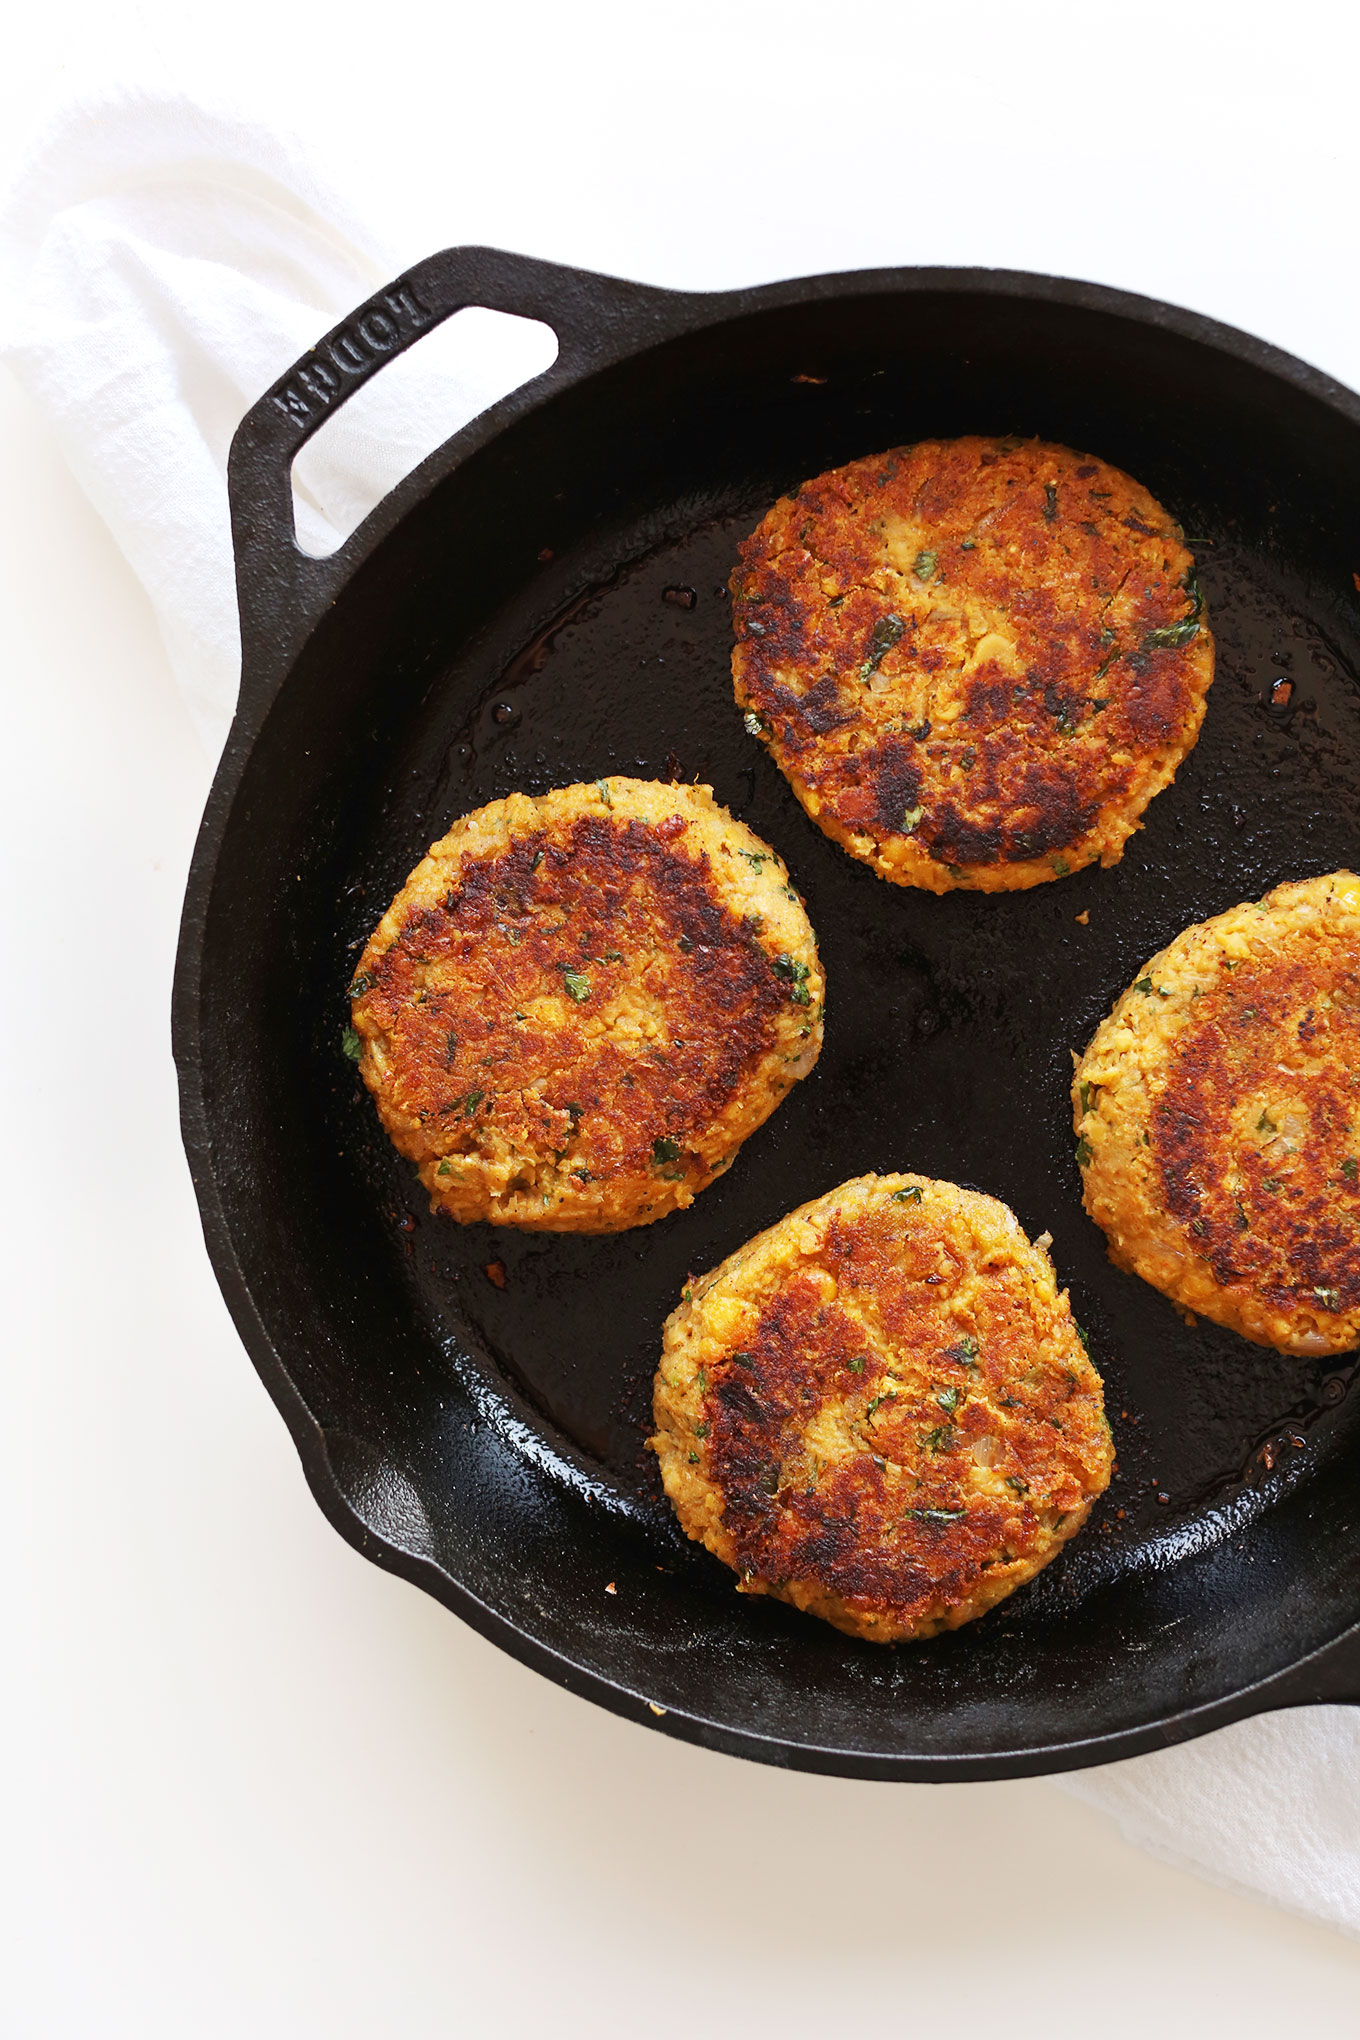 Cast-iron skillet filled with perfectly browned Green Chili Veggie Burgers for a vegan dinner